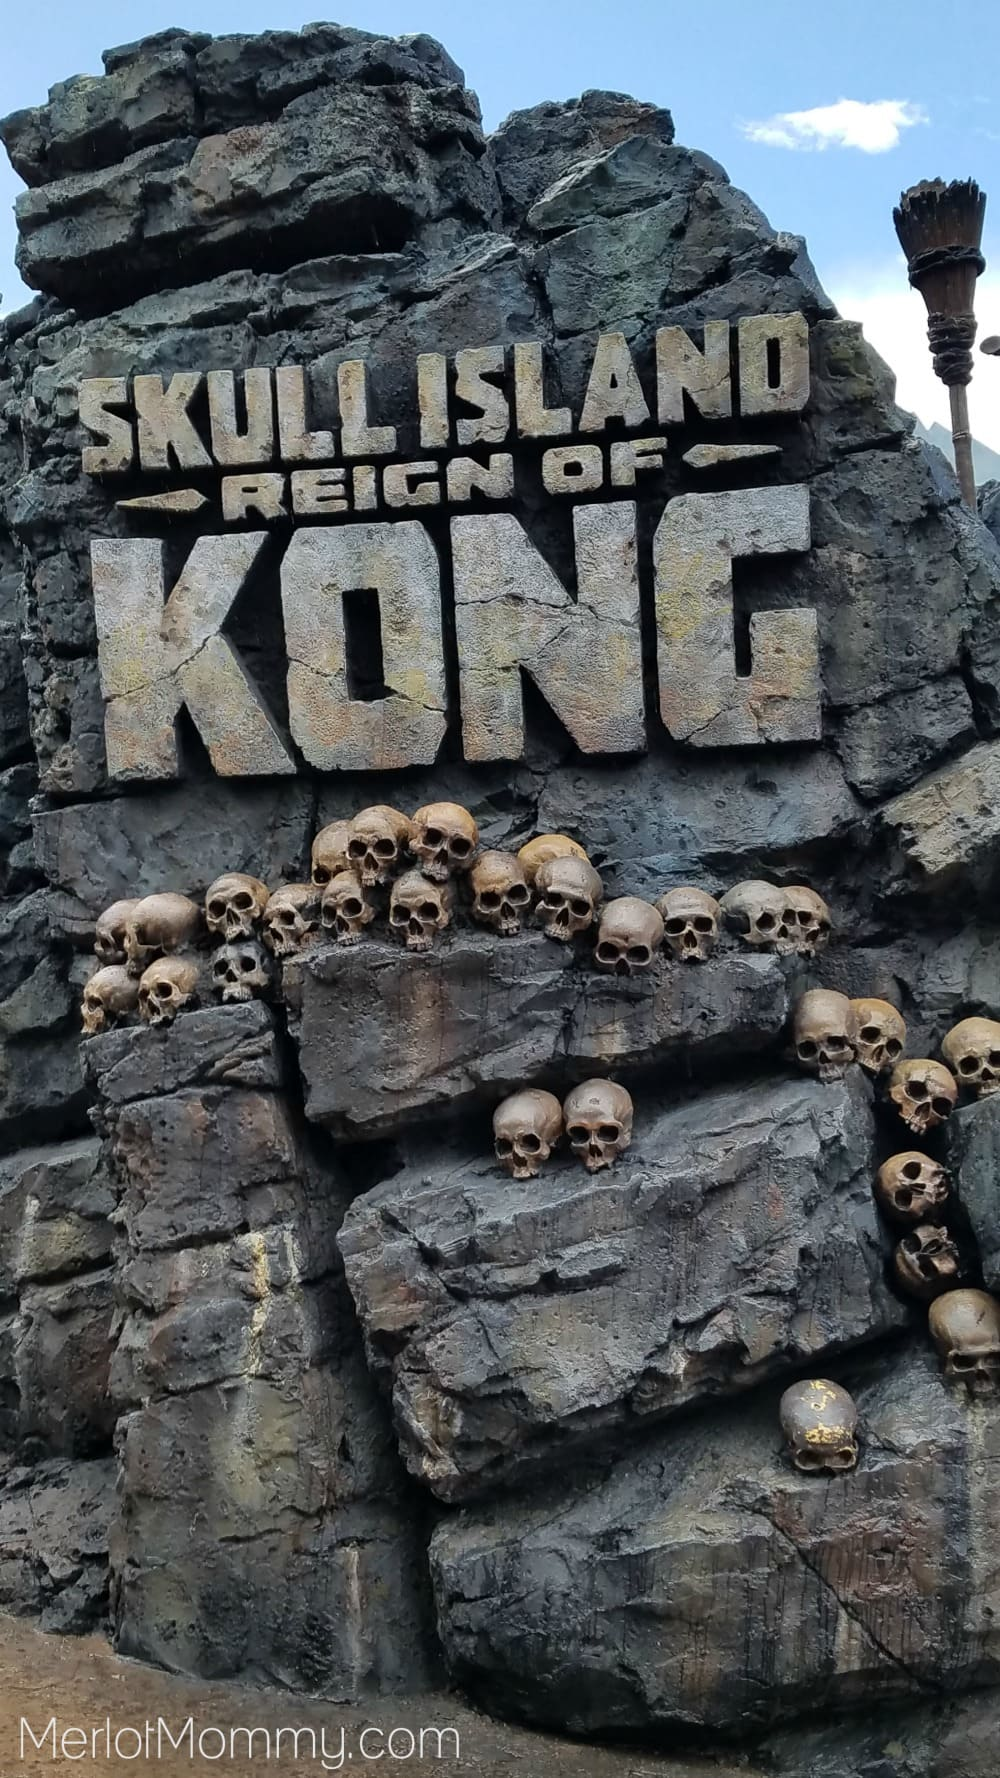 Skull Island: the Reign of Long at Universal Islands of Adventure, The Best Rides for Teens at Universal Orlando Resort